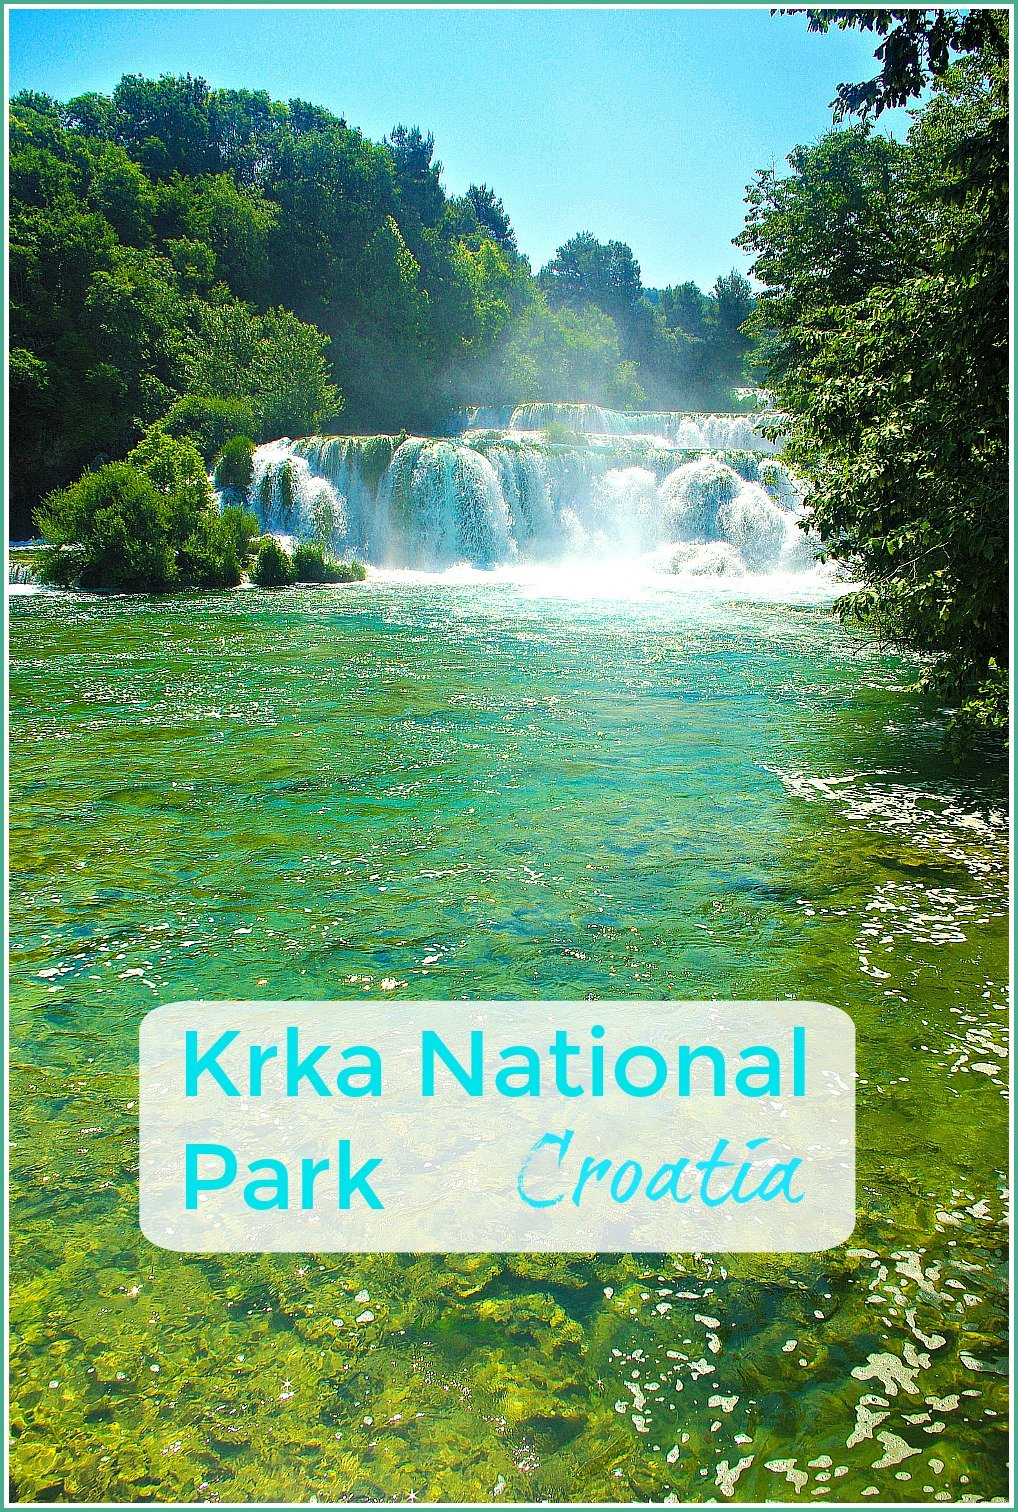 Krka National Park in Croatia rivals Plitvice Lakes